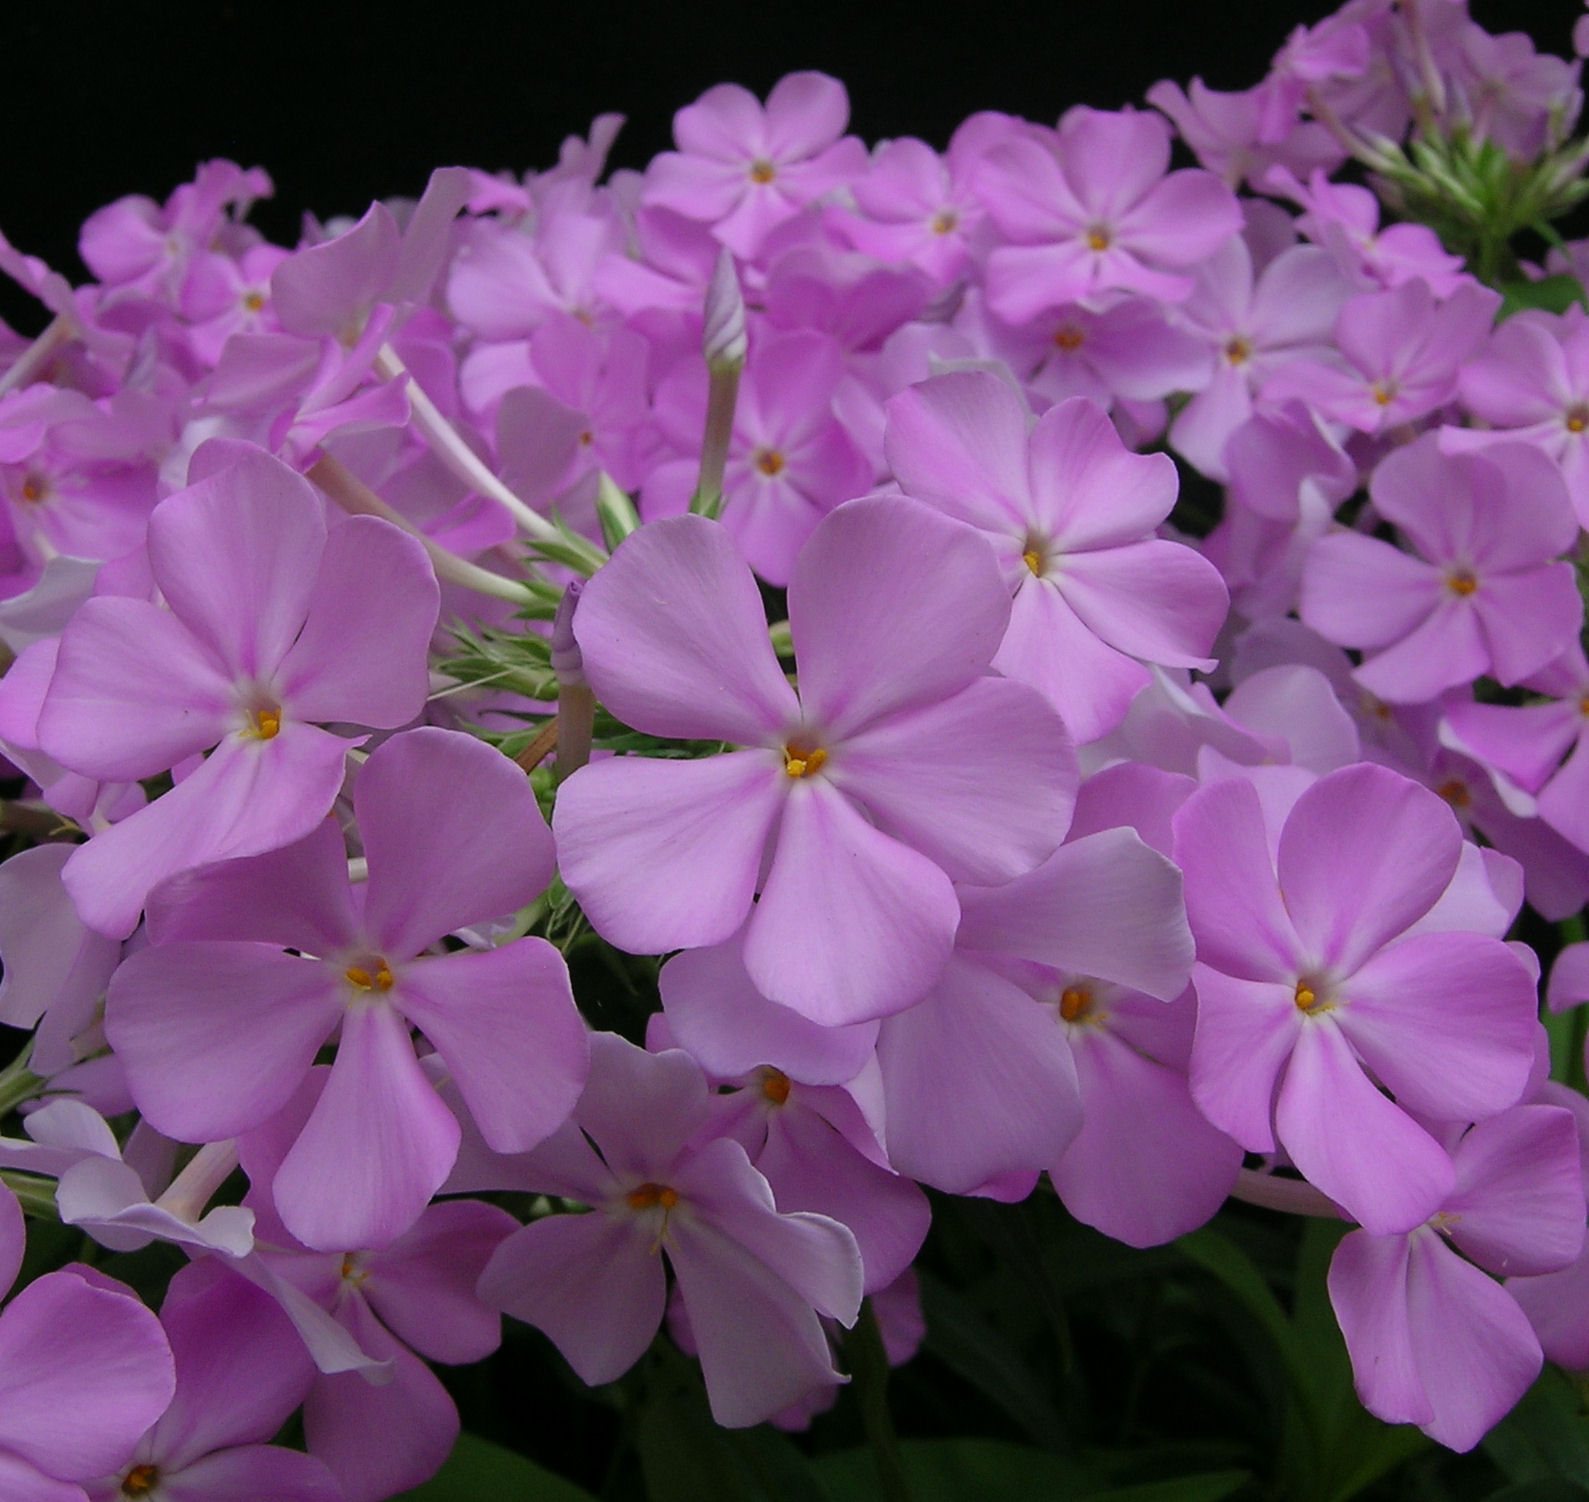 Phlox 'Rose Bouquet' flowers close-up